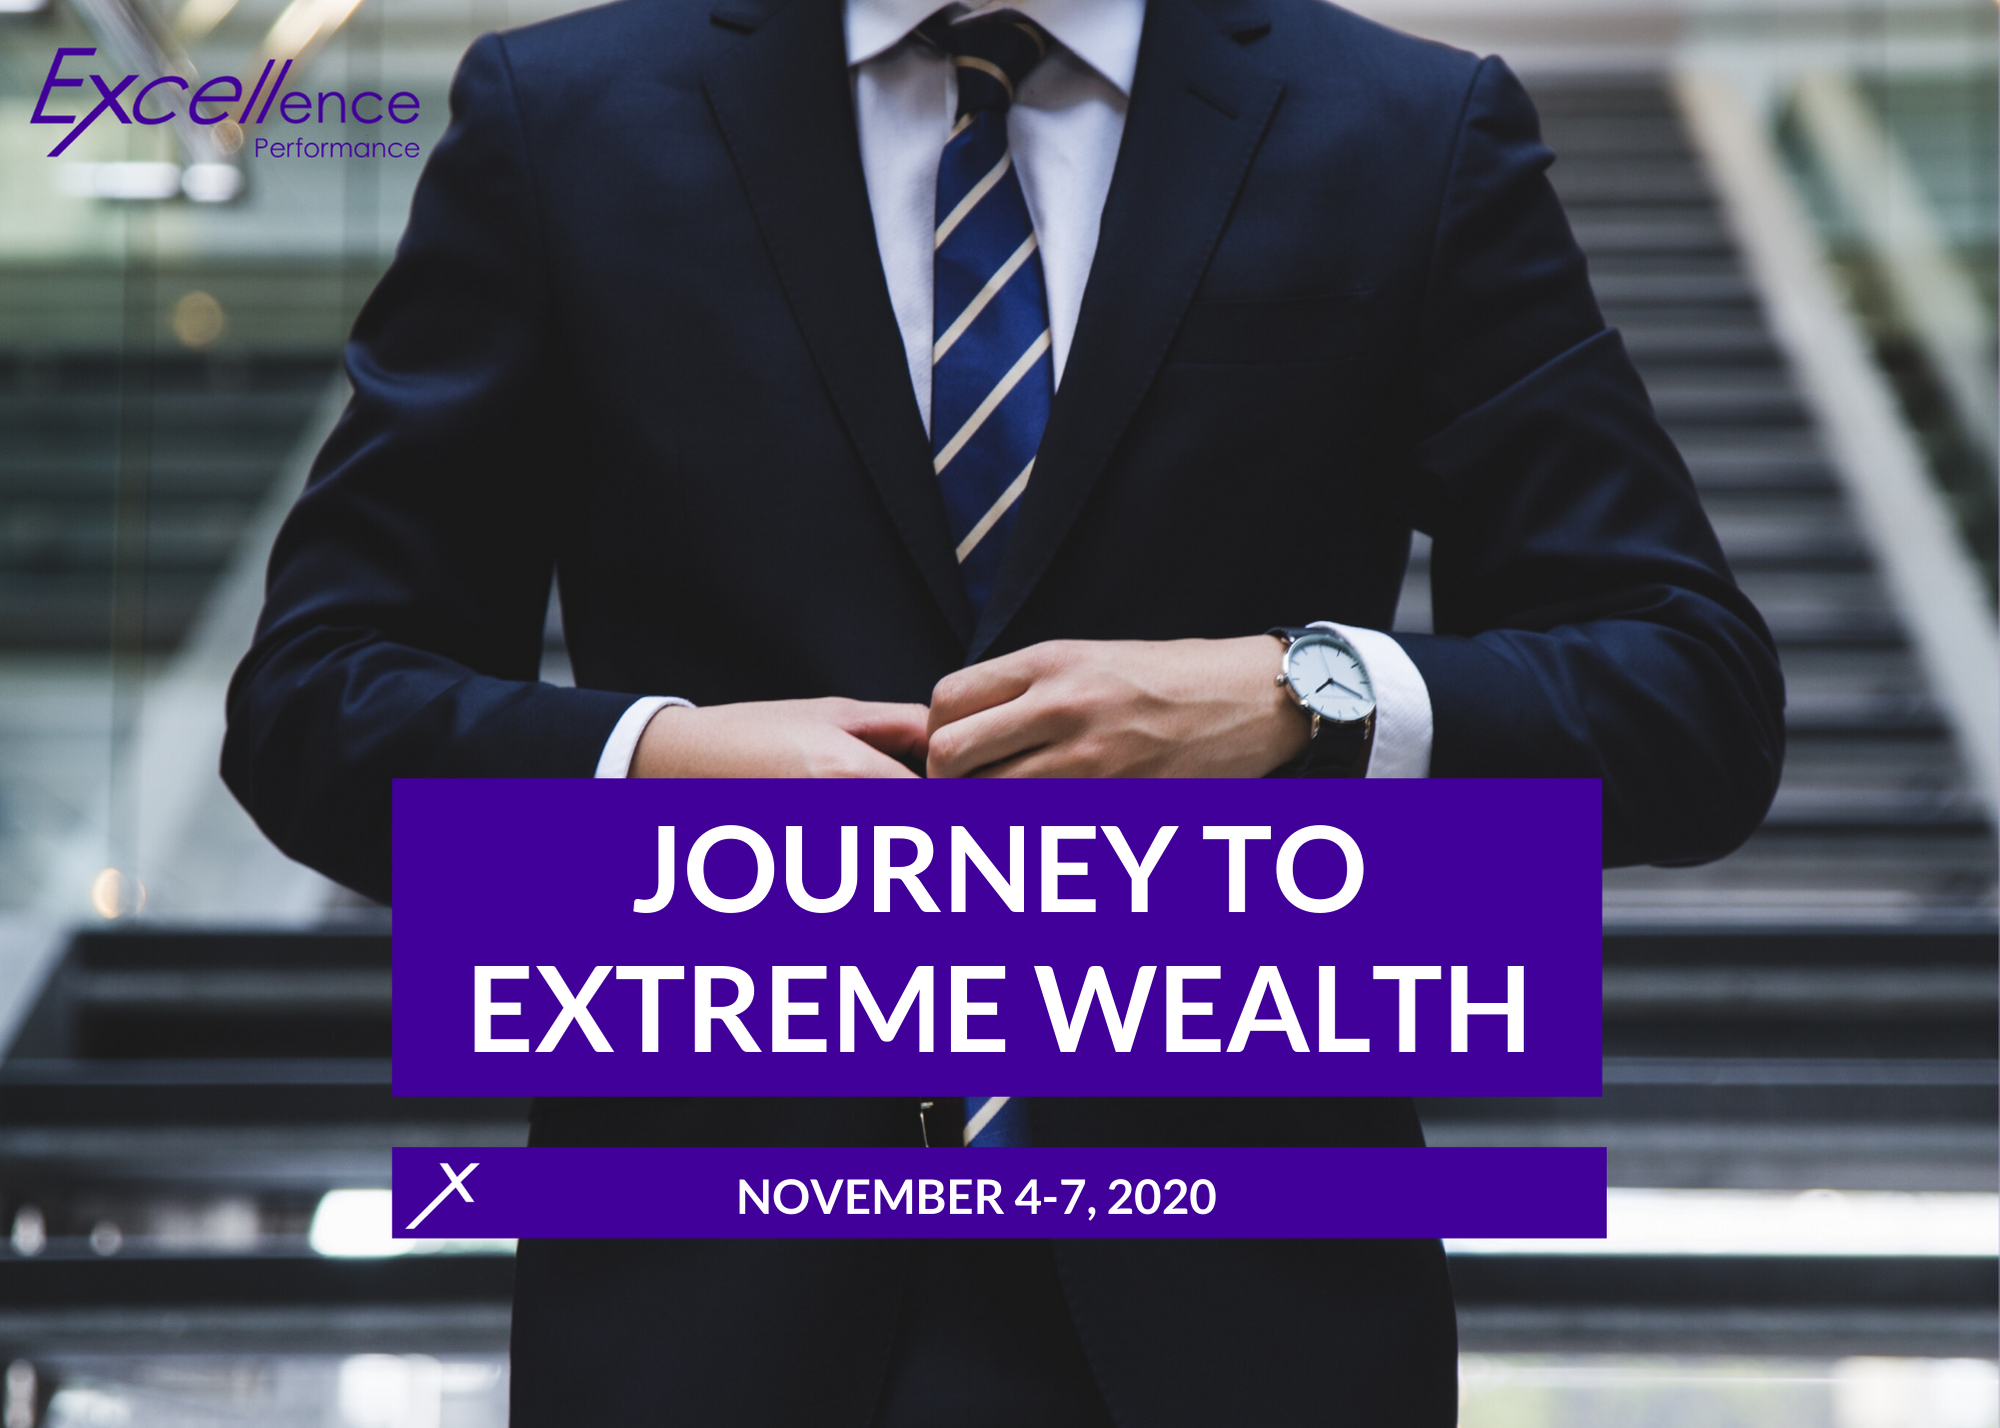 Journey to Extreme Wealth